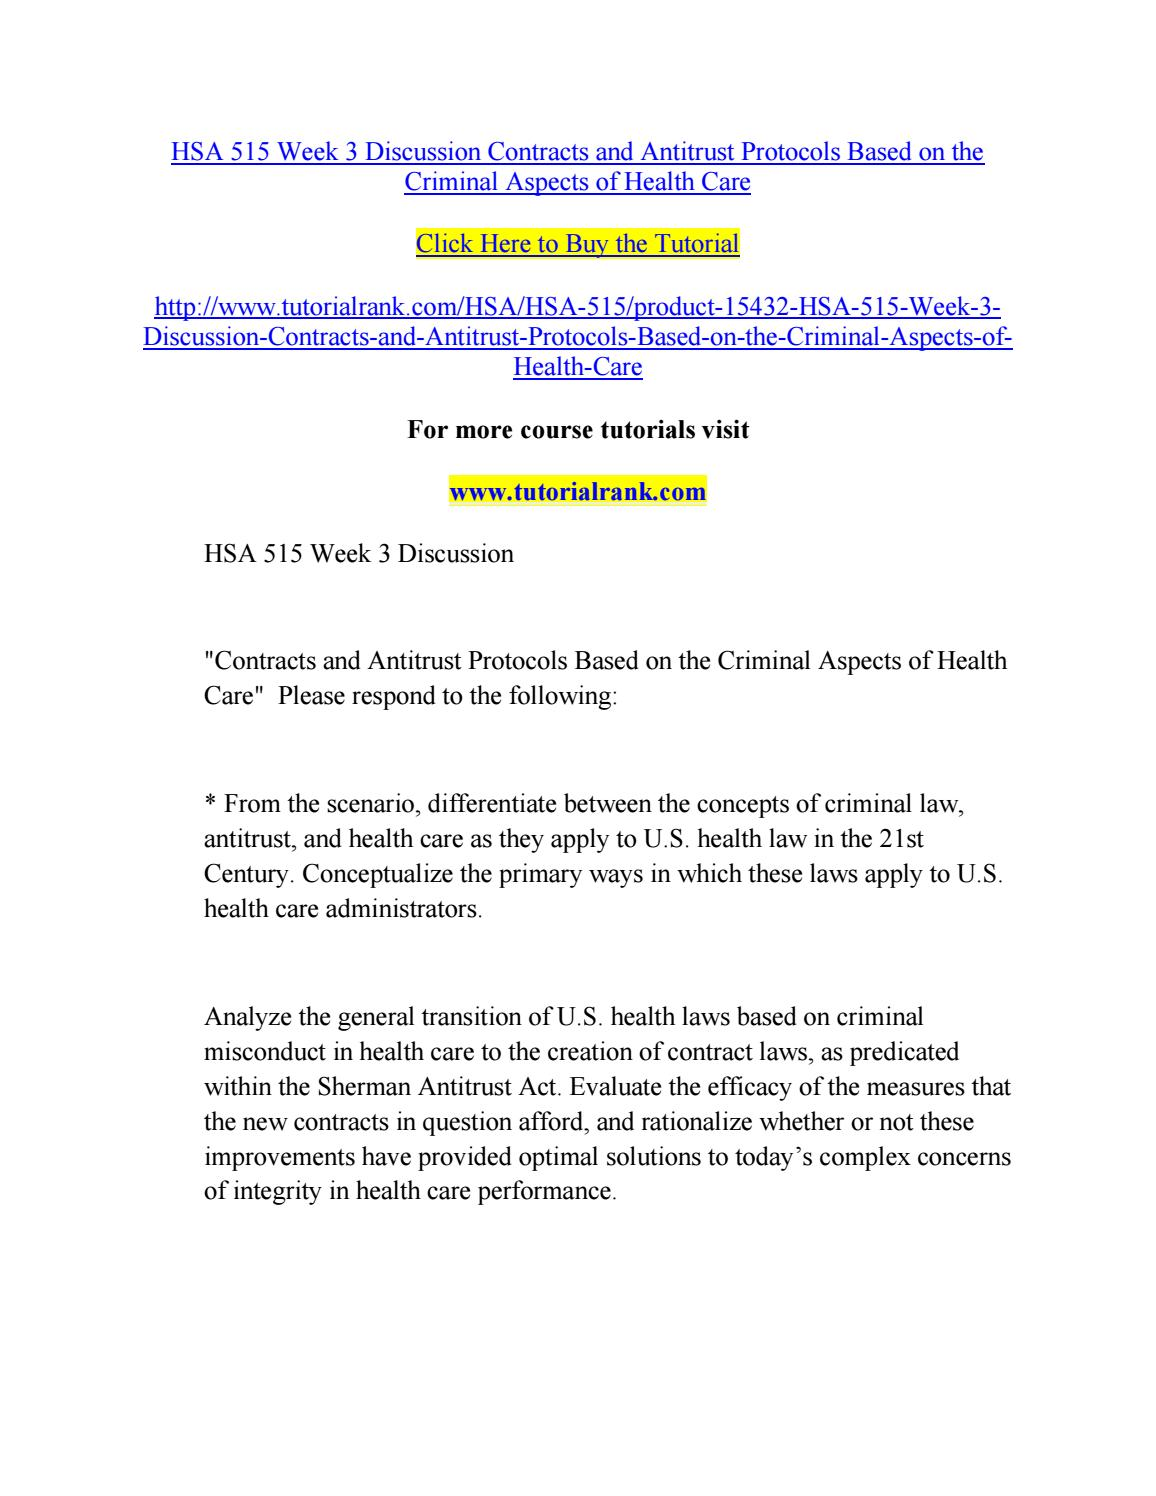 hsa 515 law and health Hsa 515 week 1 to 11 dqs for more classes visit wwwsnaptutorialcom hsa 515 week 1 discussion development of us health care in hospitals based on the foundation of us law.